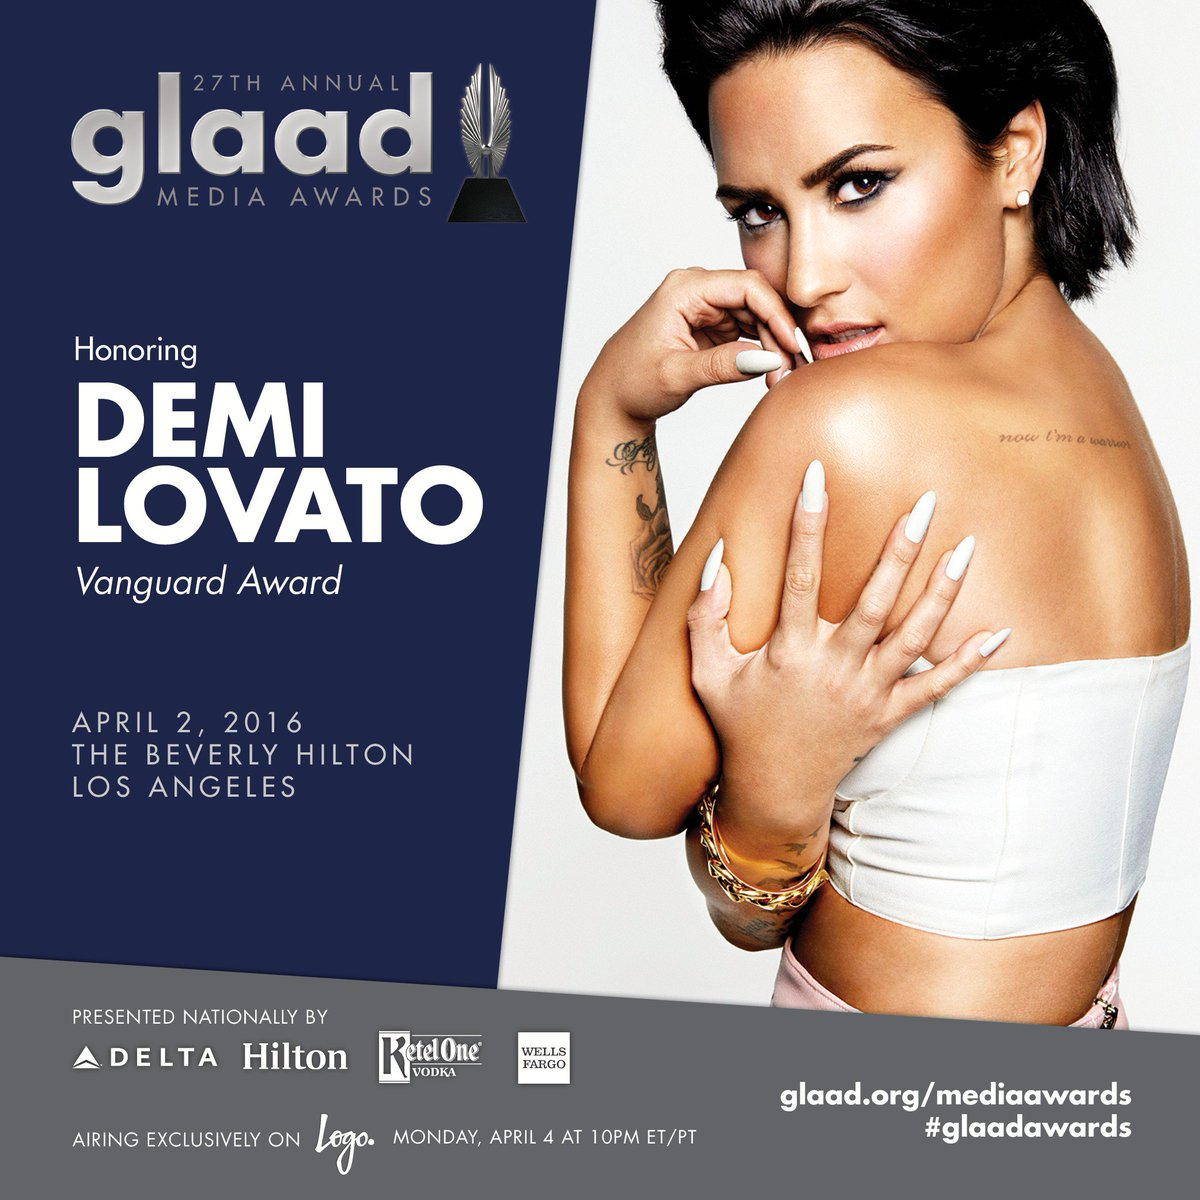 We're thrilled that @ddlovato will be honored at the #glaadawards in LA on April 2! https://t.co/jDJiYrMmRB https://t.co/gSKEMX4ey4